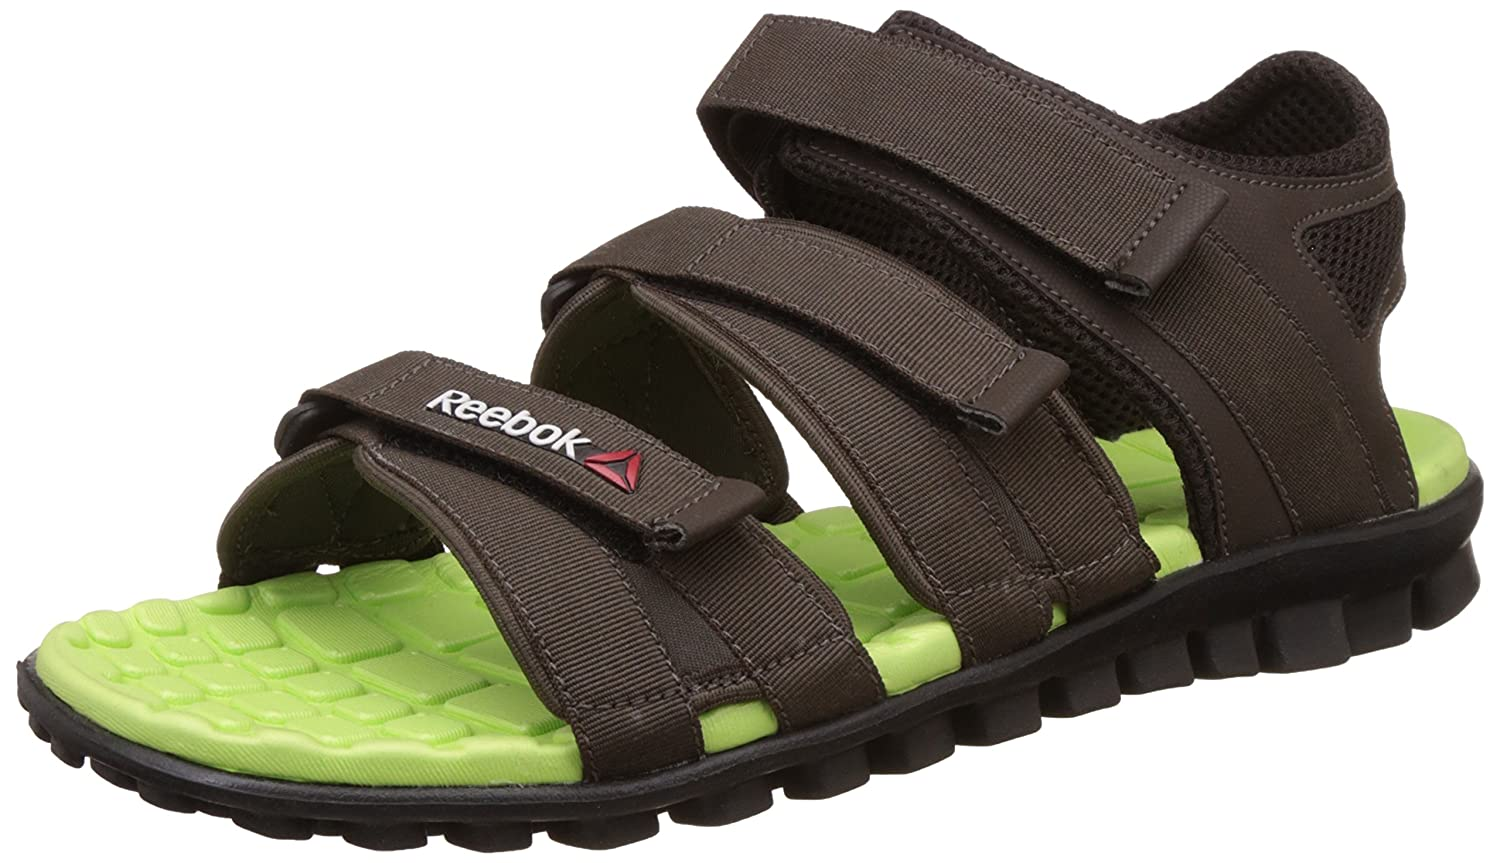 70212c1f5529d Reebok Men s Chrome Flex Stone Athletic   Outdoor Sandals  Buy Online at  Low Prices in India - Amazon.in